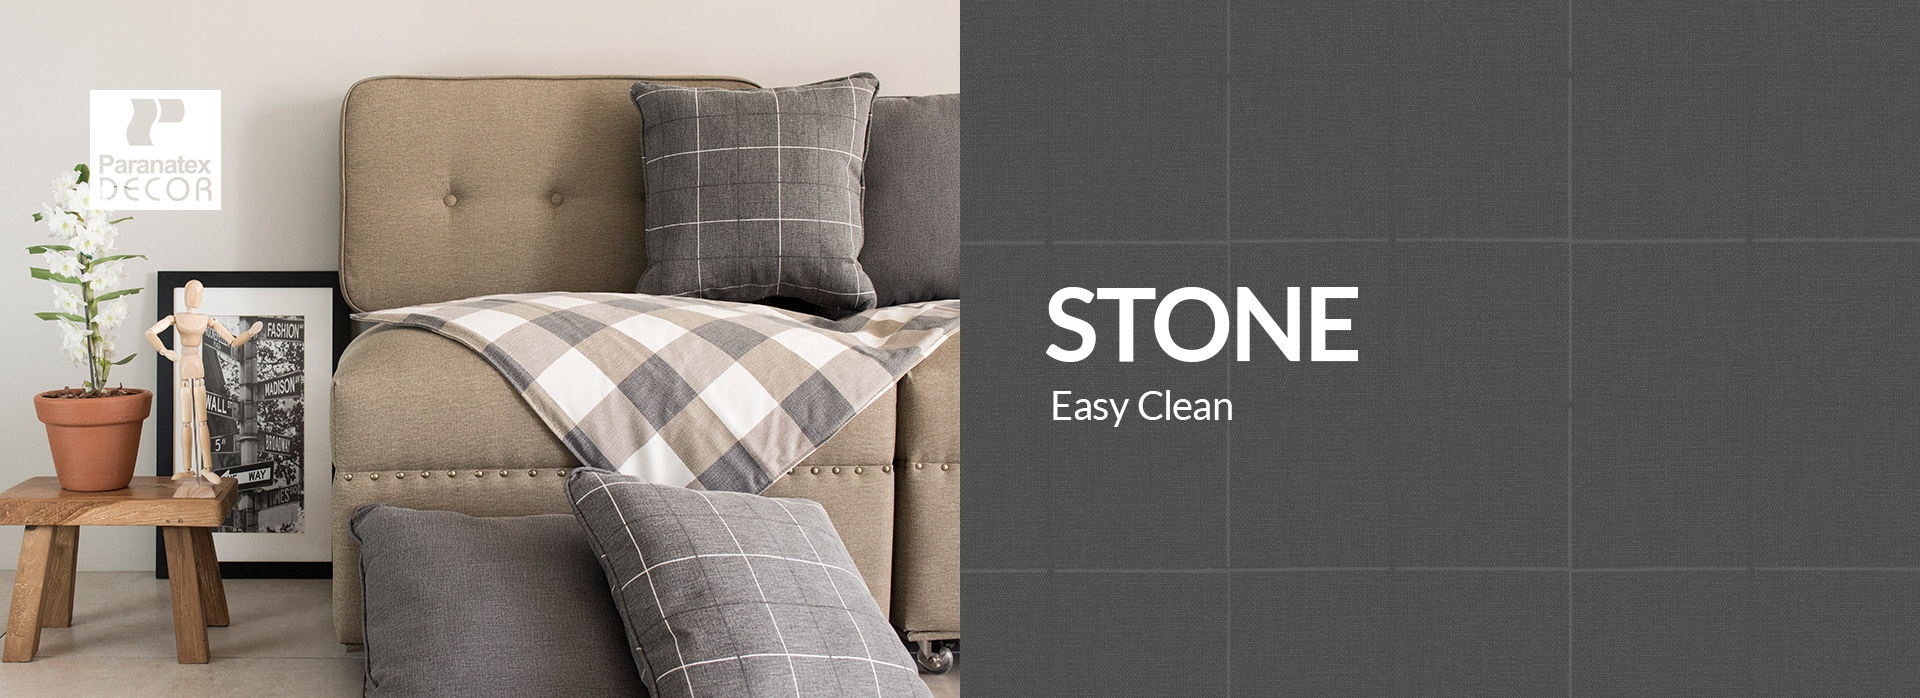 Stone Easy Clean